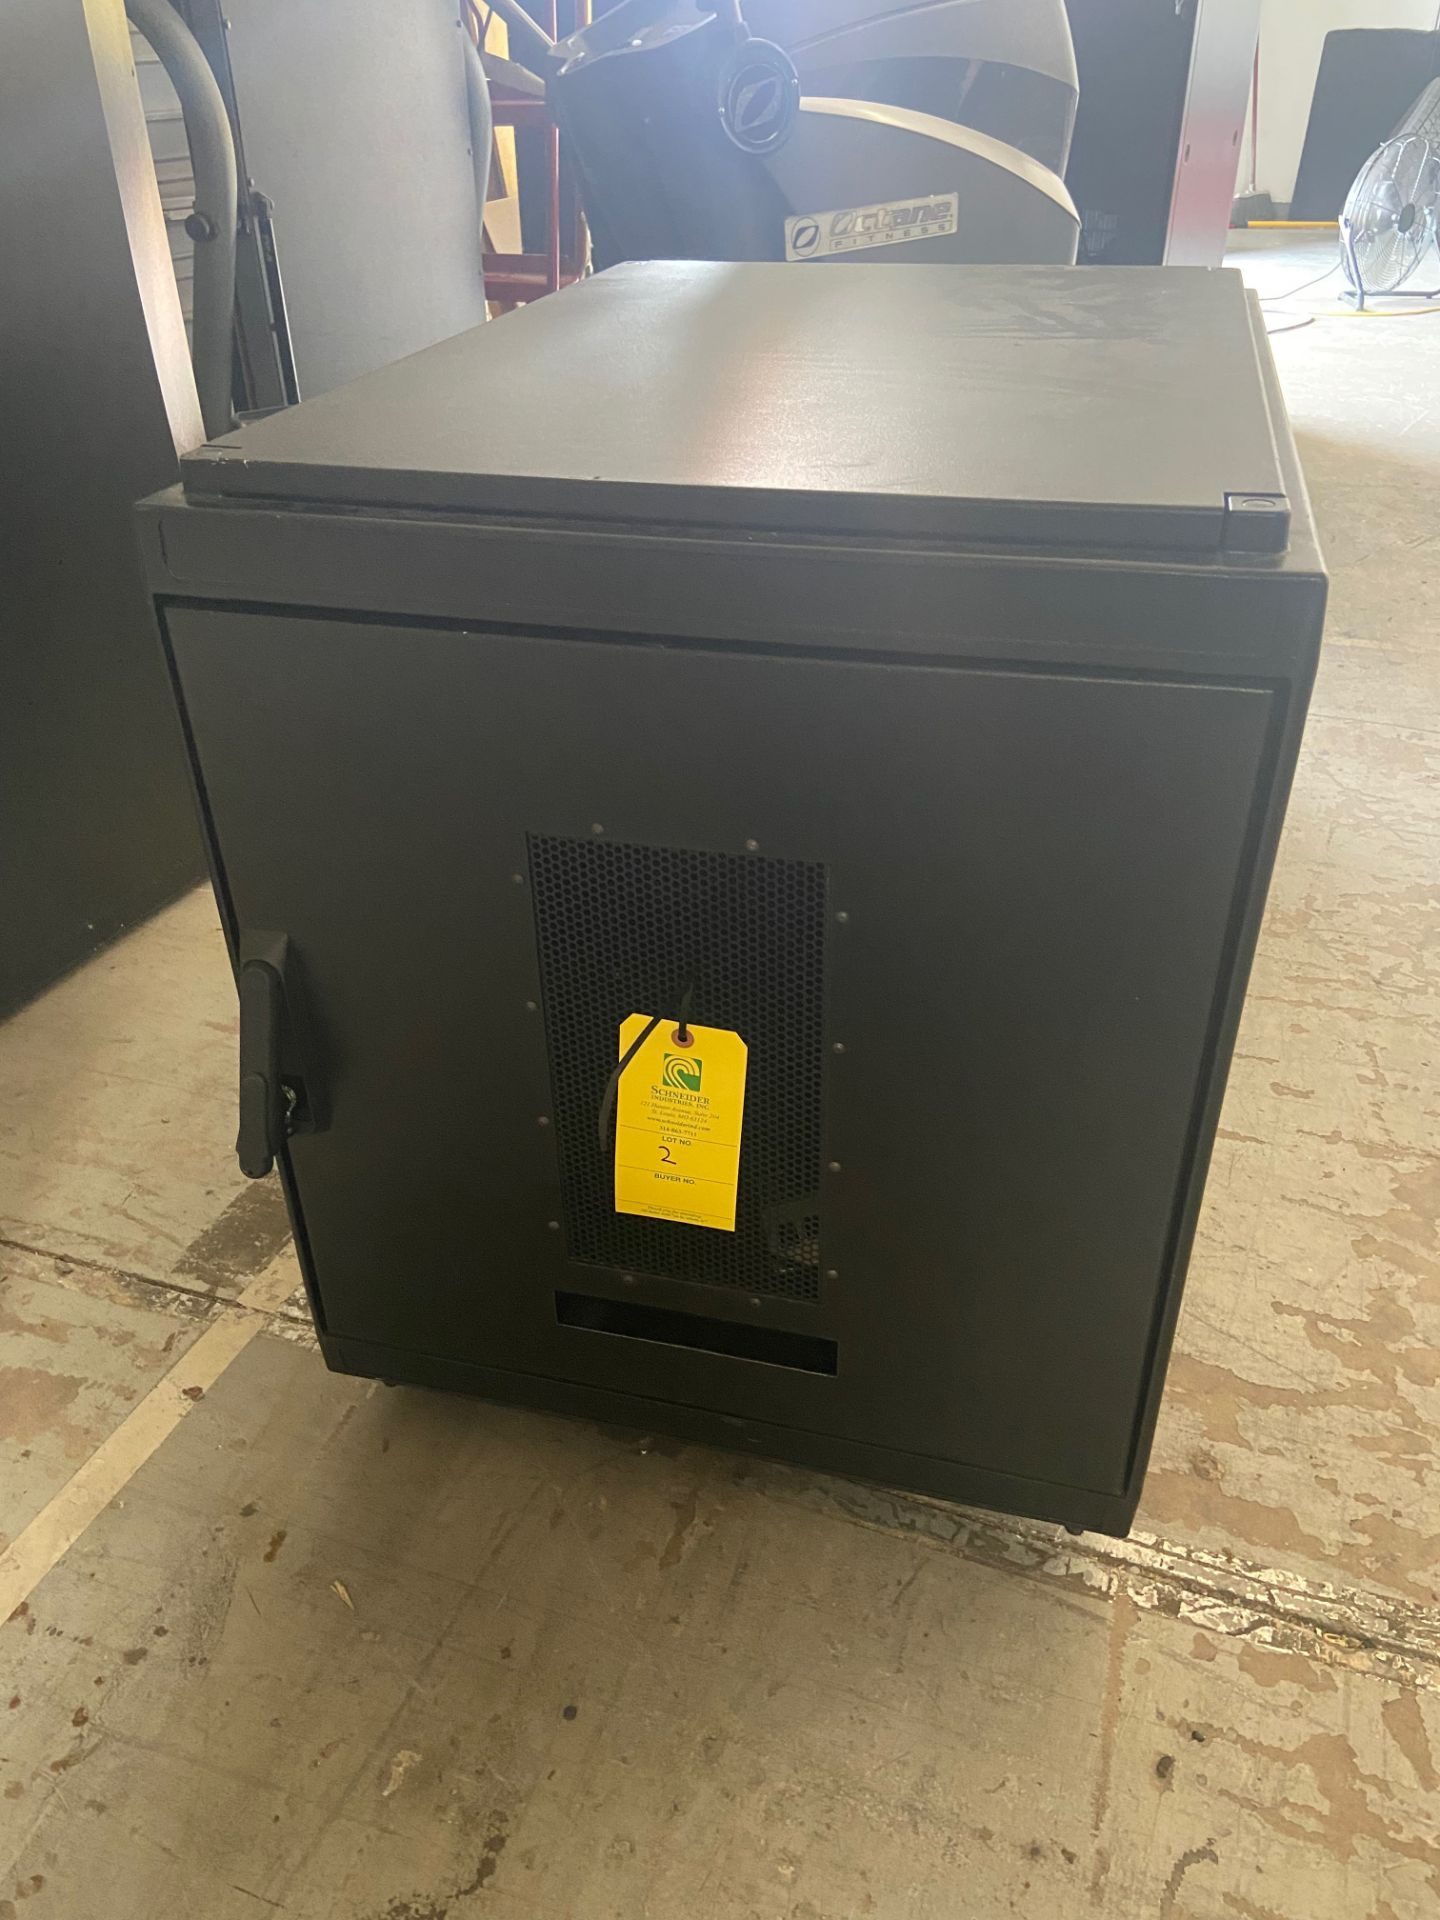 """Network Server Data Rack Enclosure Cabinet, 2' Wide x 33"""" Deep x 30"""" Tall, Loading/Removal Fee: $20 - Image 2 of 5"""